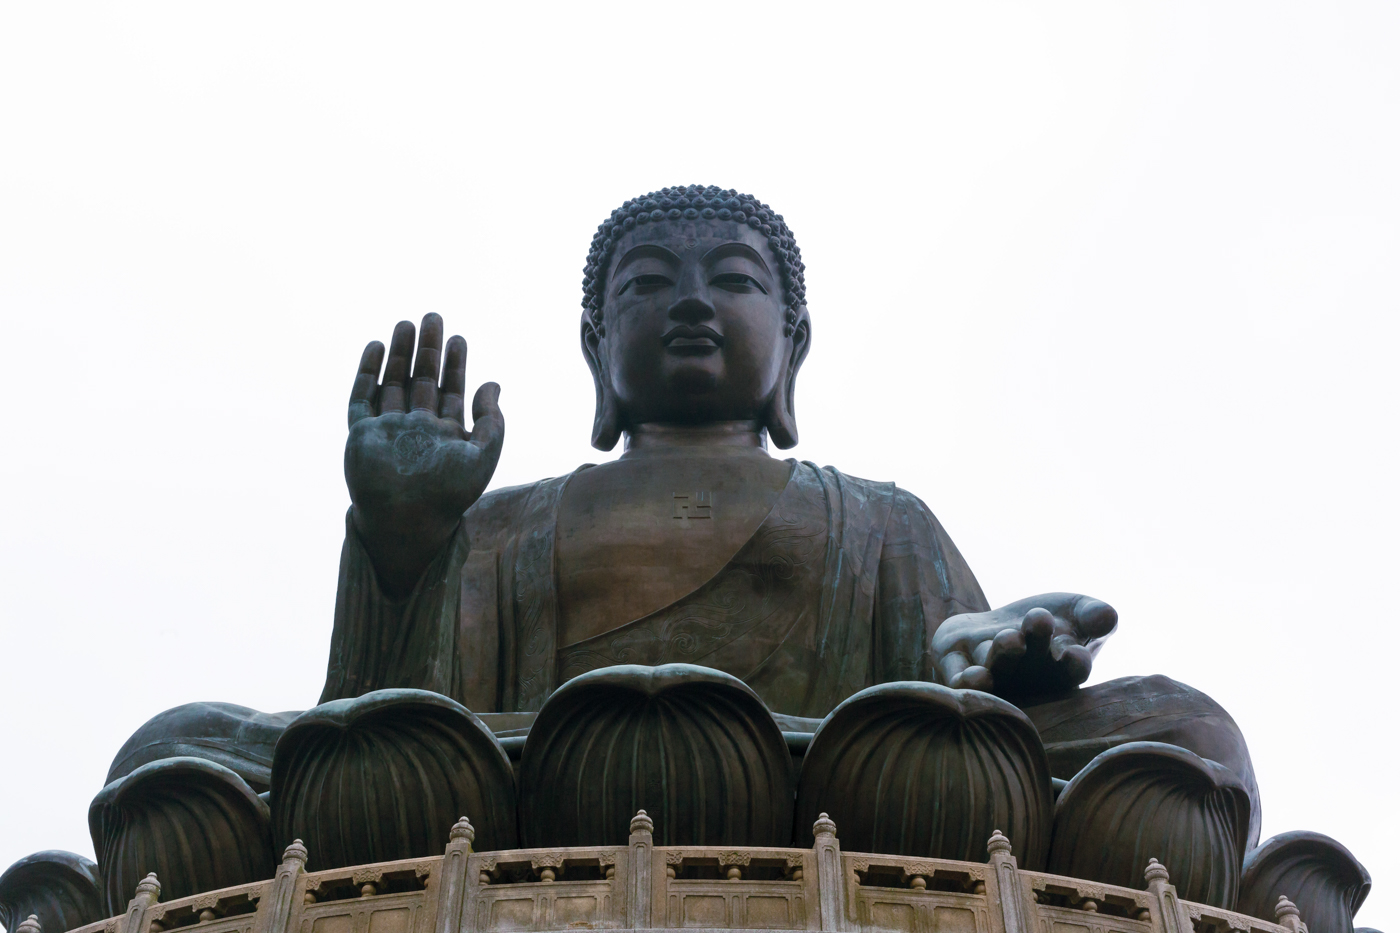 At the base of the Big Buddha statue.